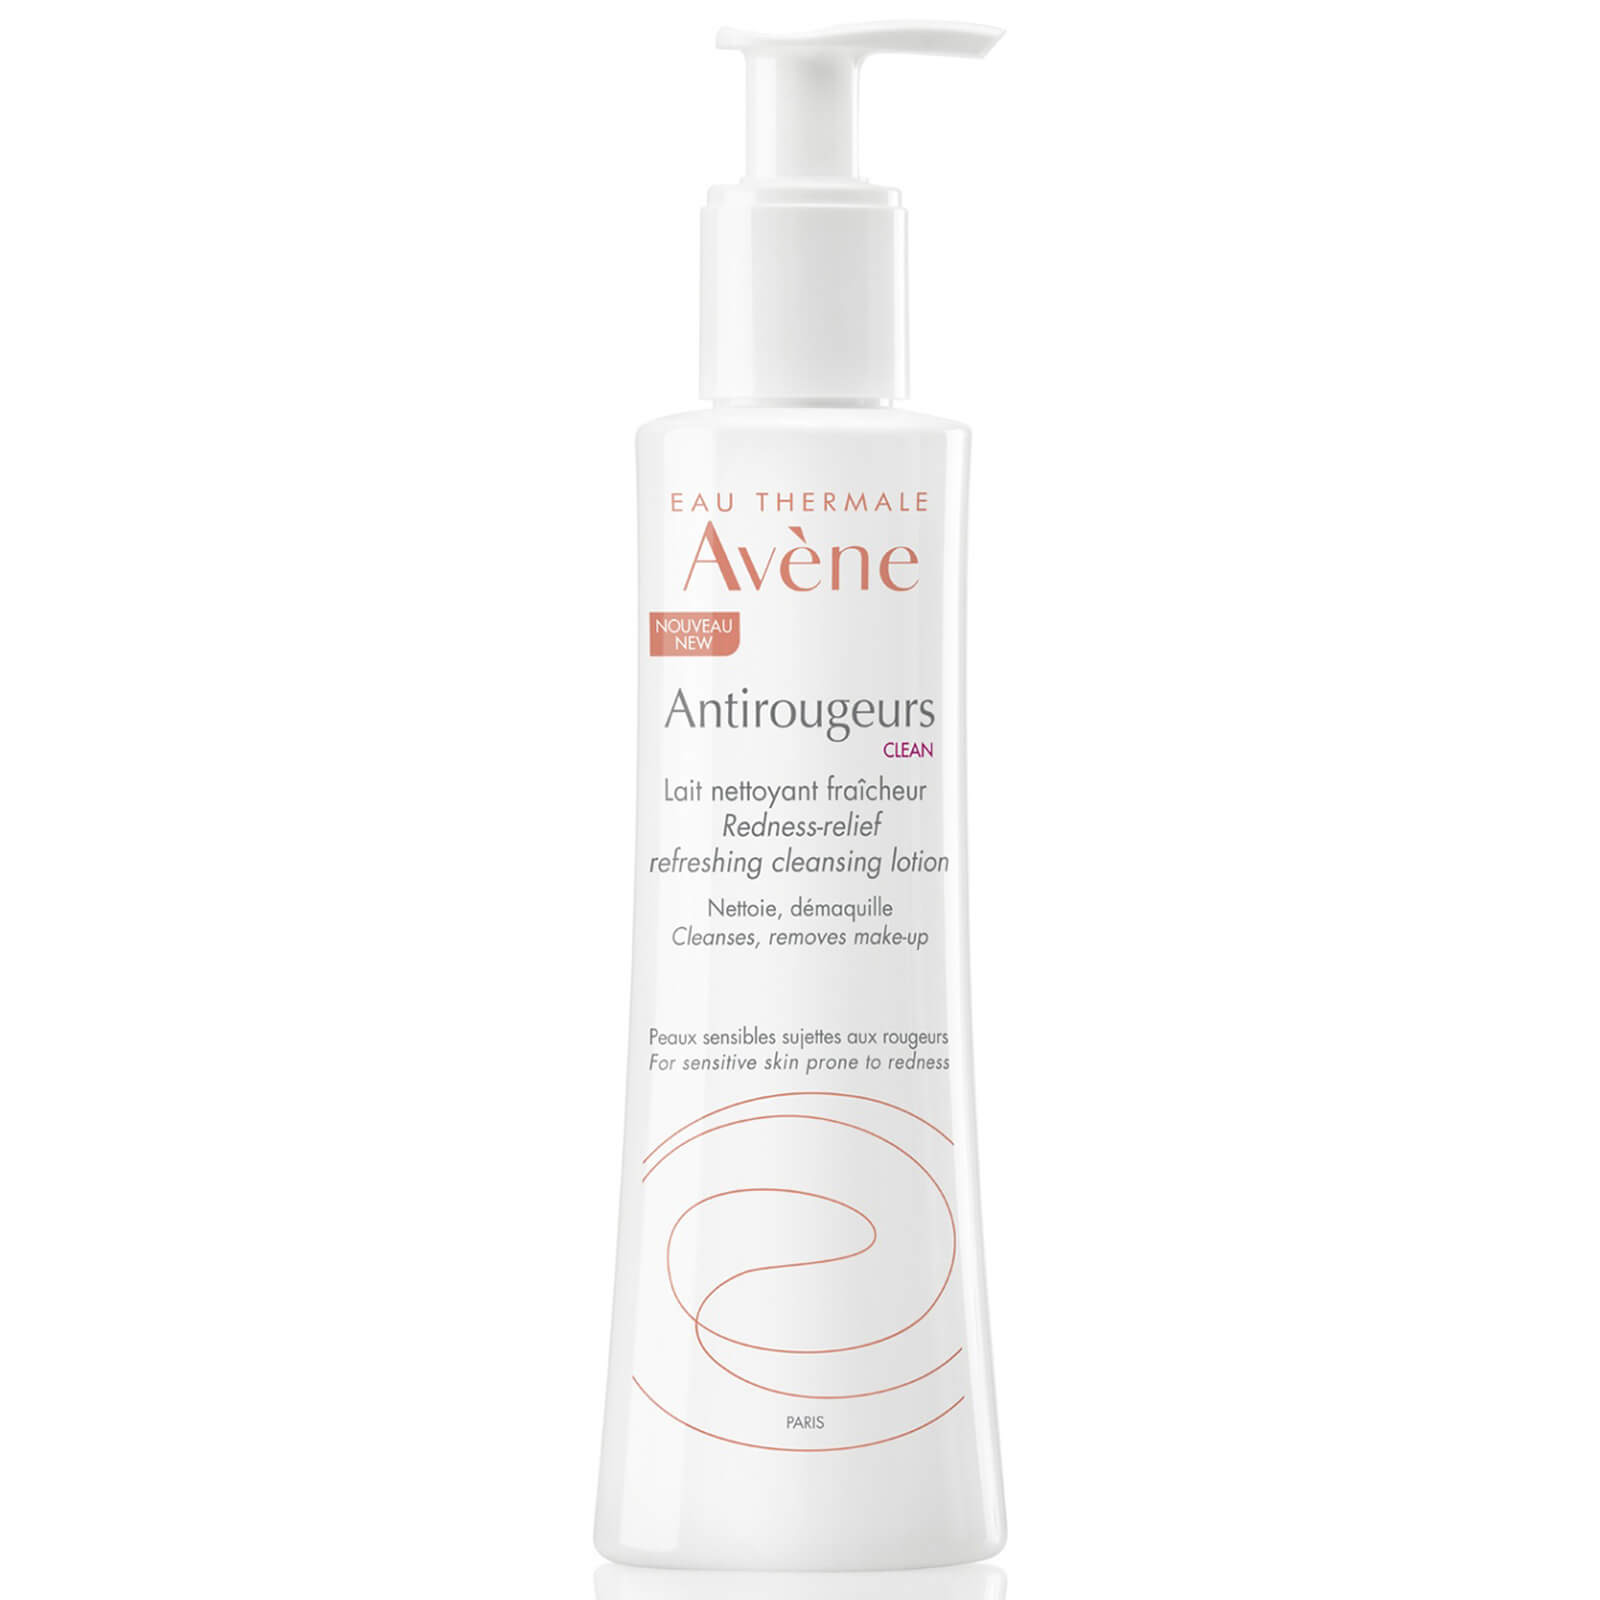 Avene Antirougeurs Clean Cleanser